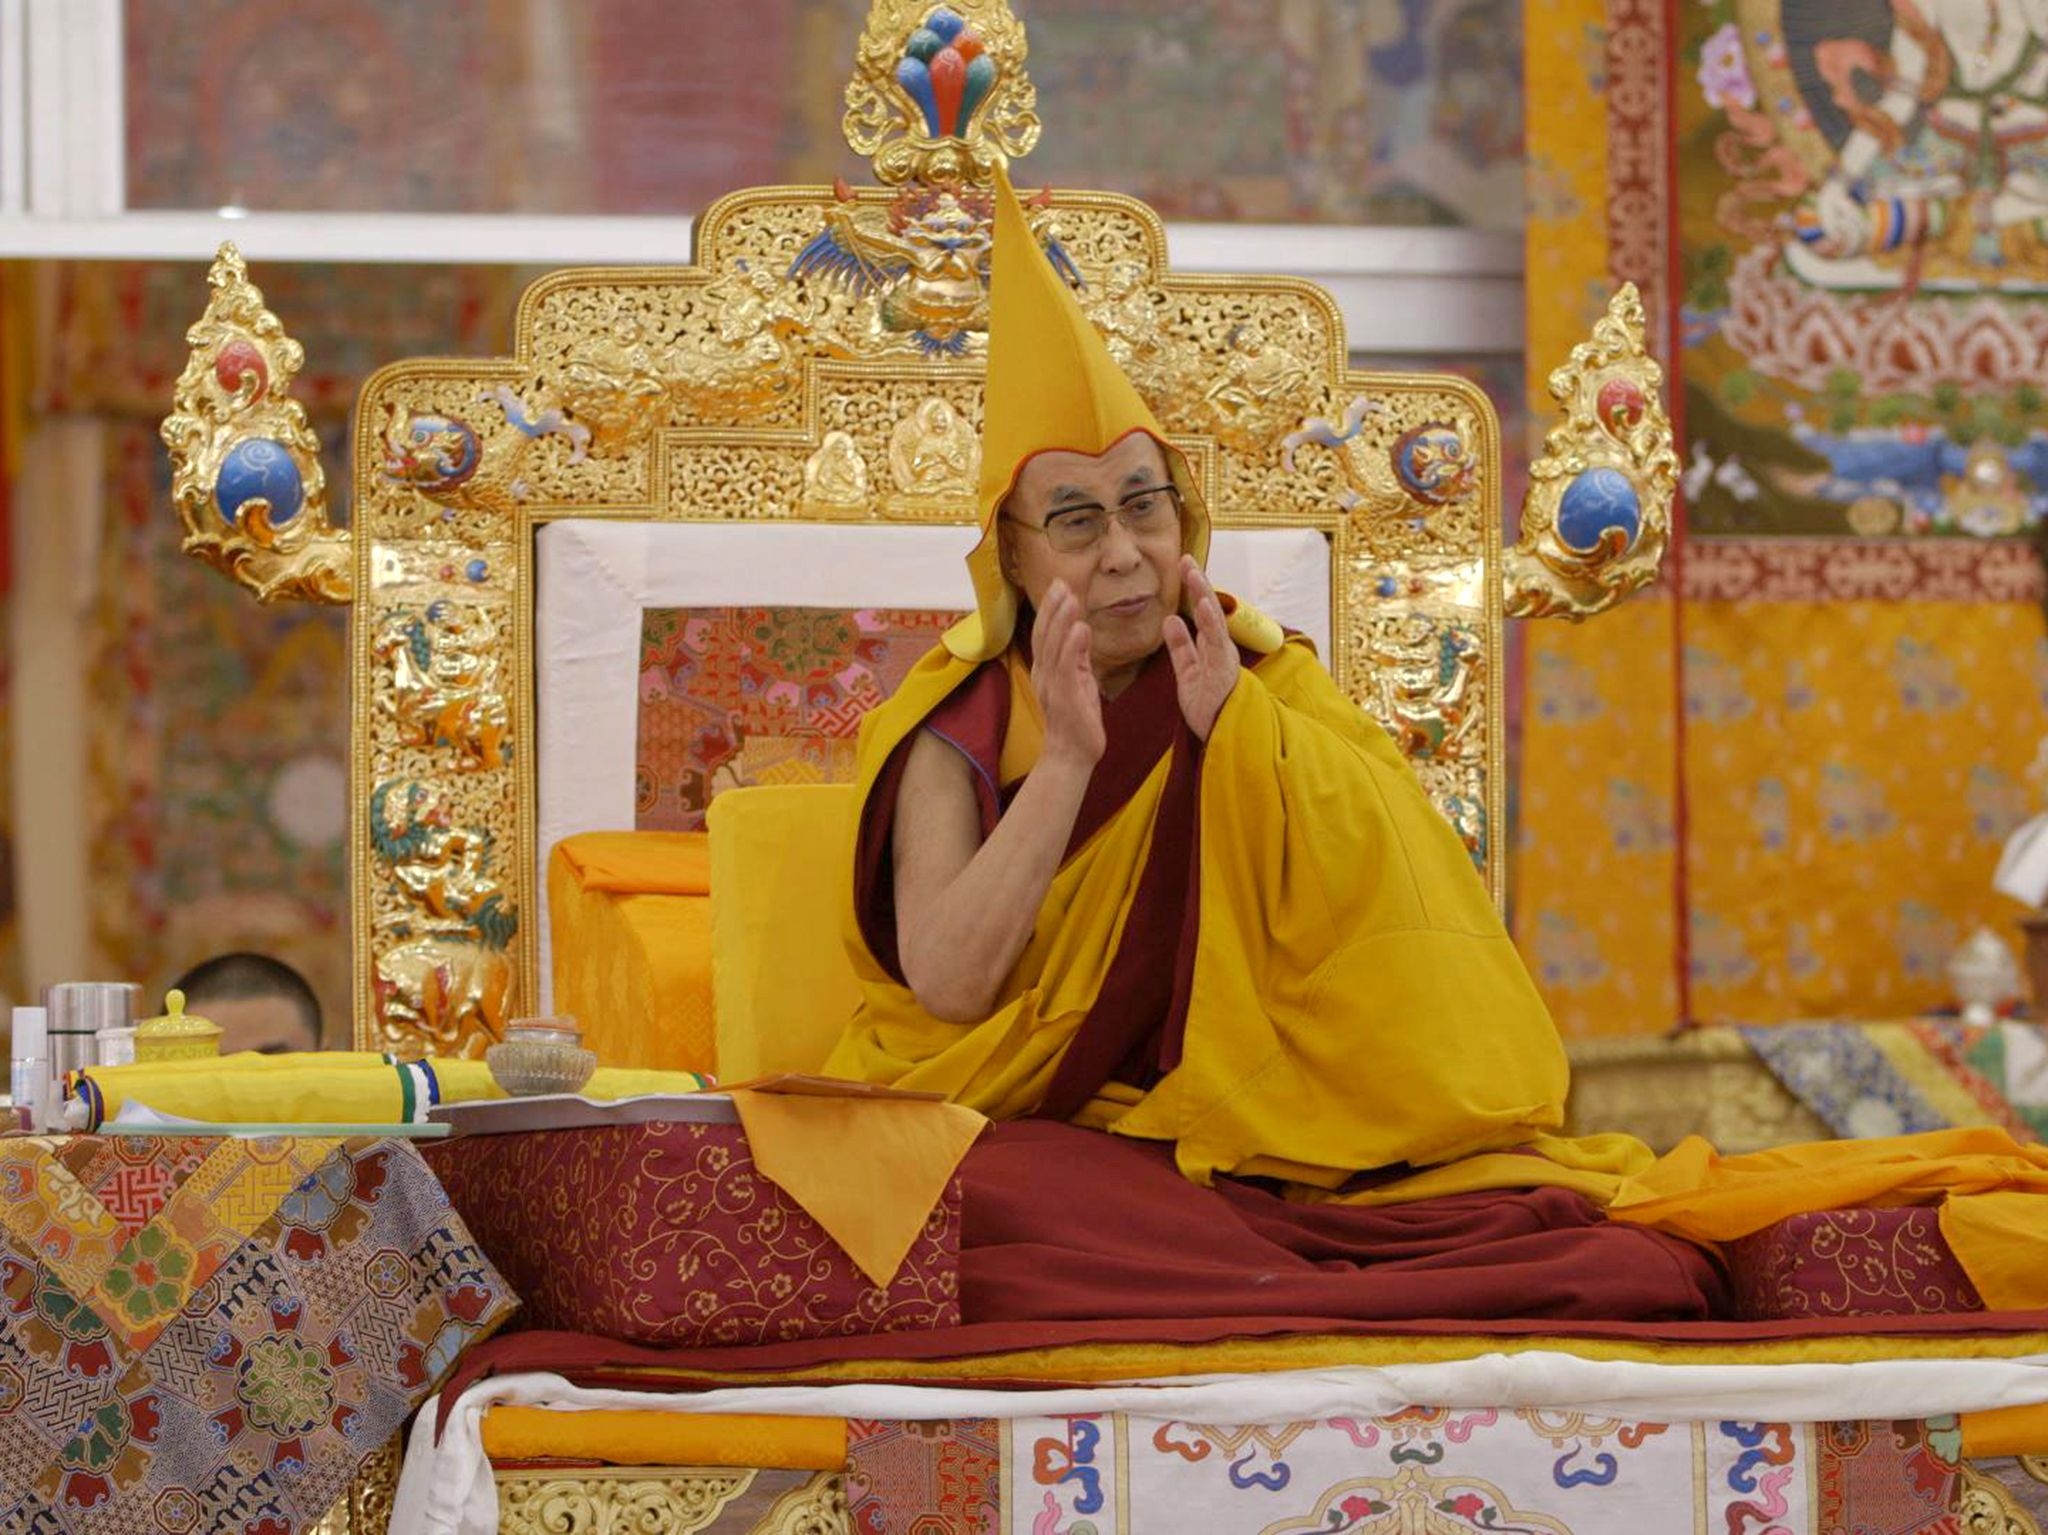 Bodh Gaya, Bihar, India: His Holiness The Dalai Lama leading the Kalachakra ceremony. This image... [Photo of the day - April 2017]